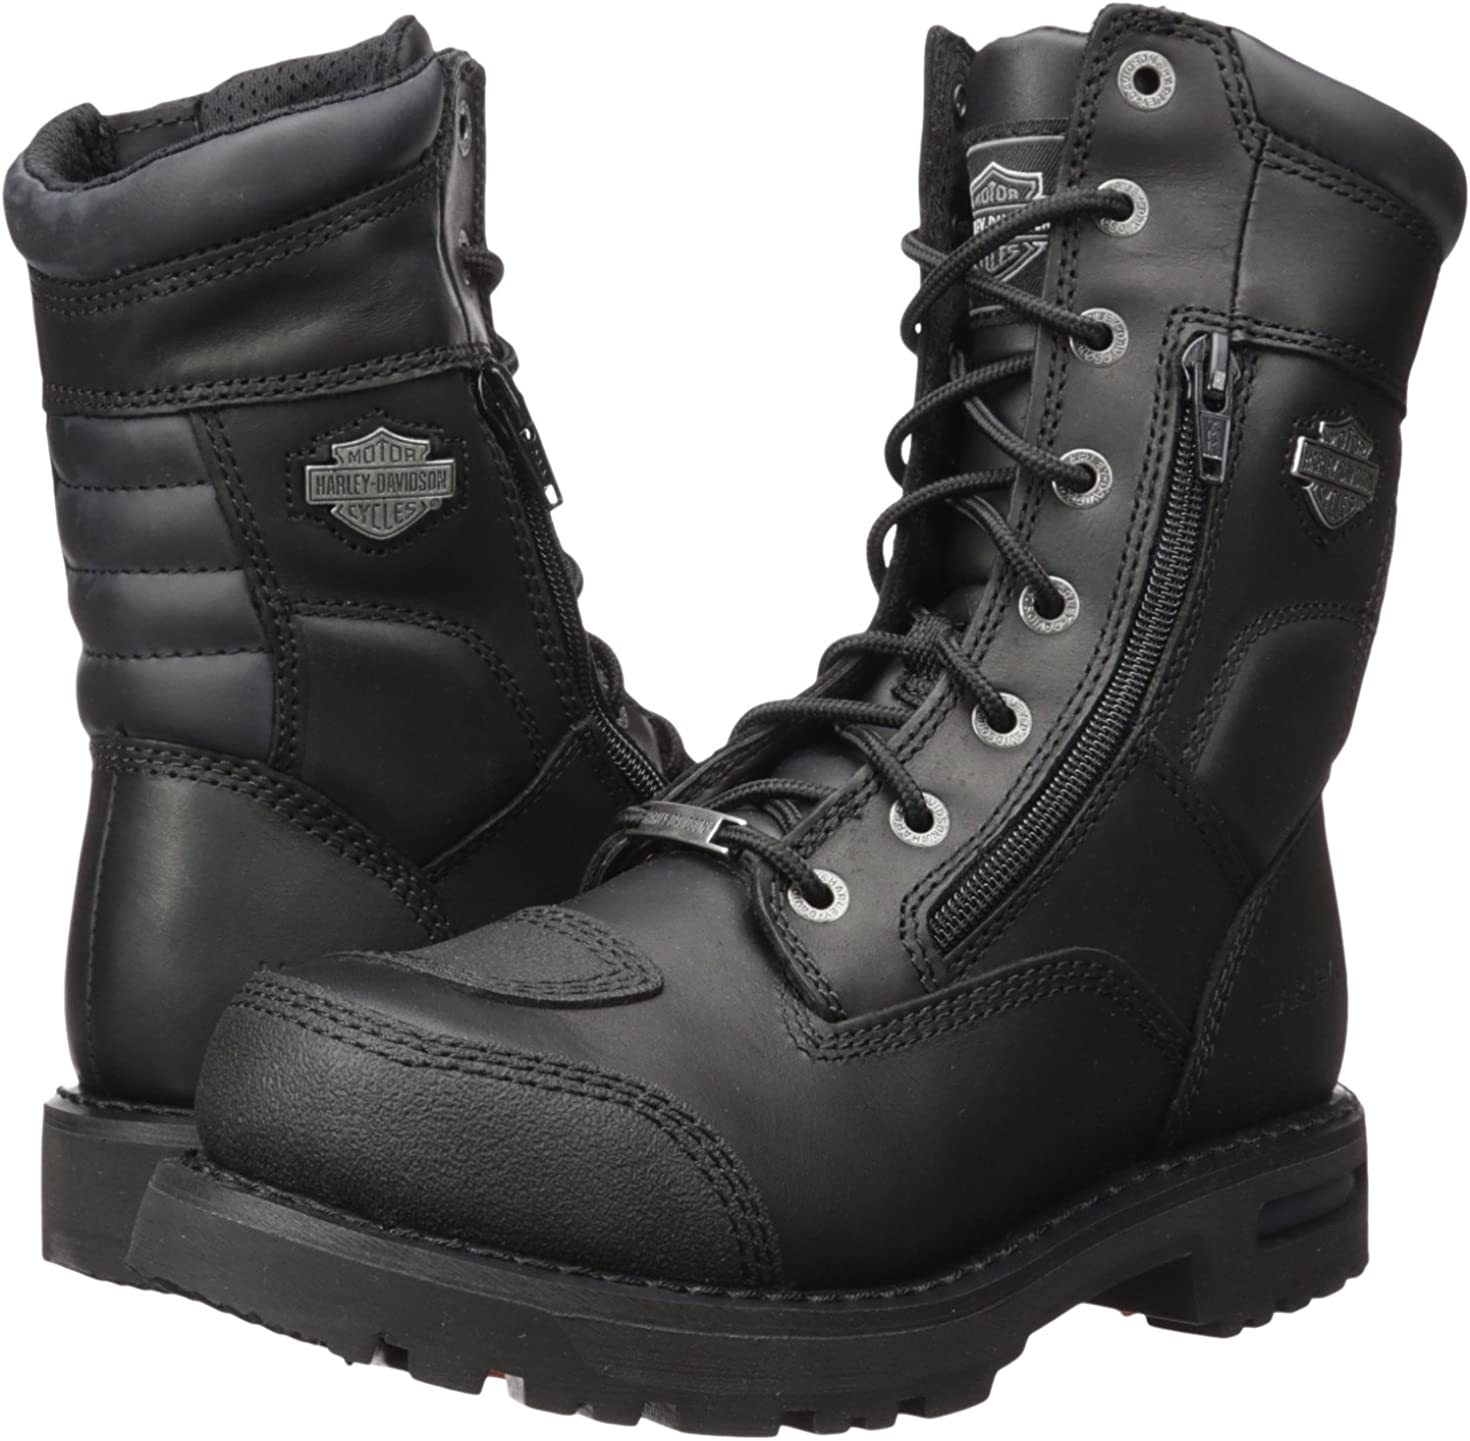 Harley Davidson Boots Black Leather sz 8  Harley Riding Boots Vintage Motorcycle Riding Boots EUR 41 Harley Boots sz 8 US UK 7